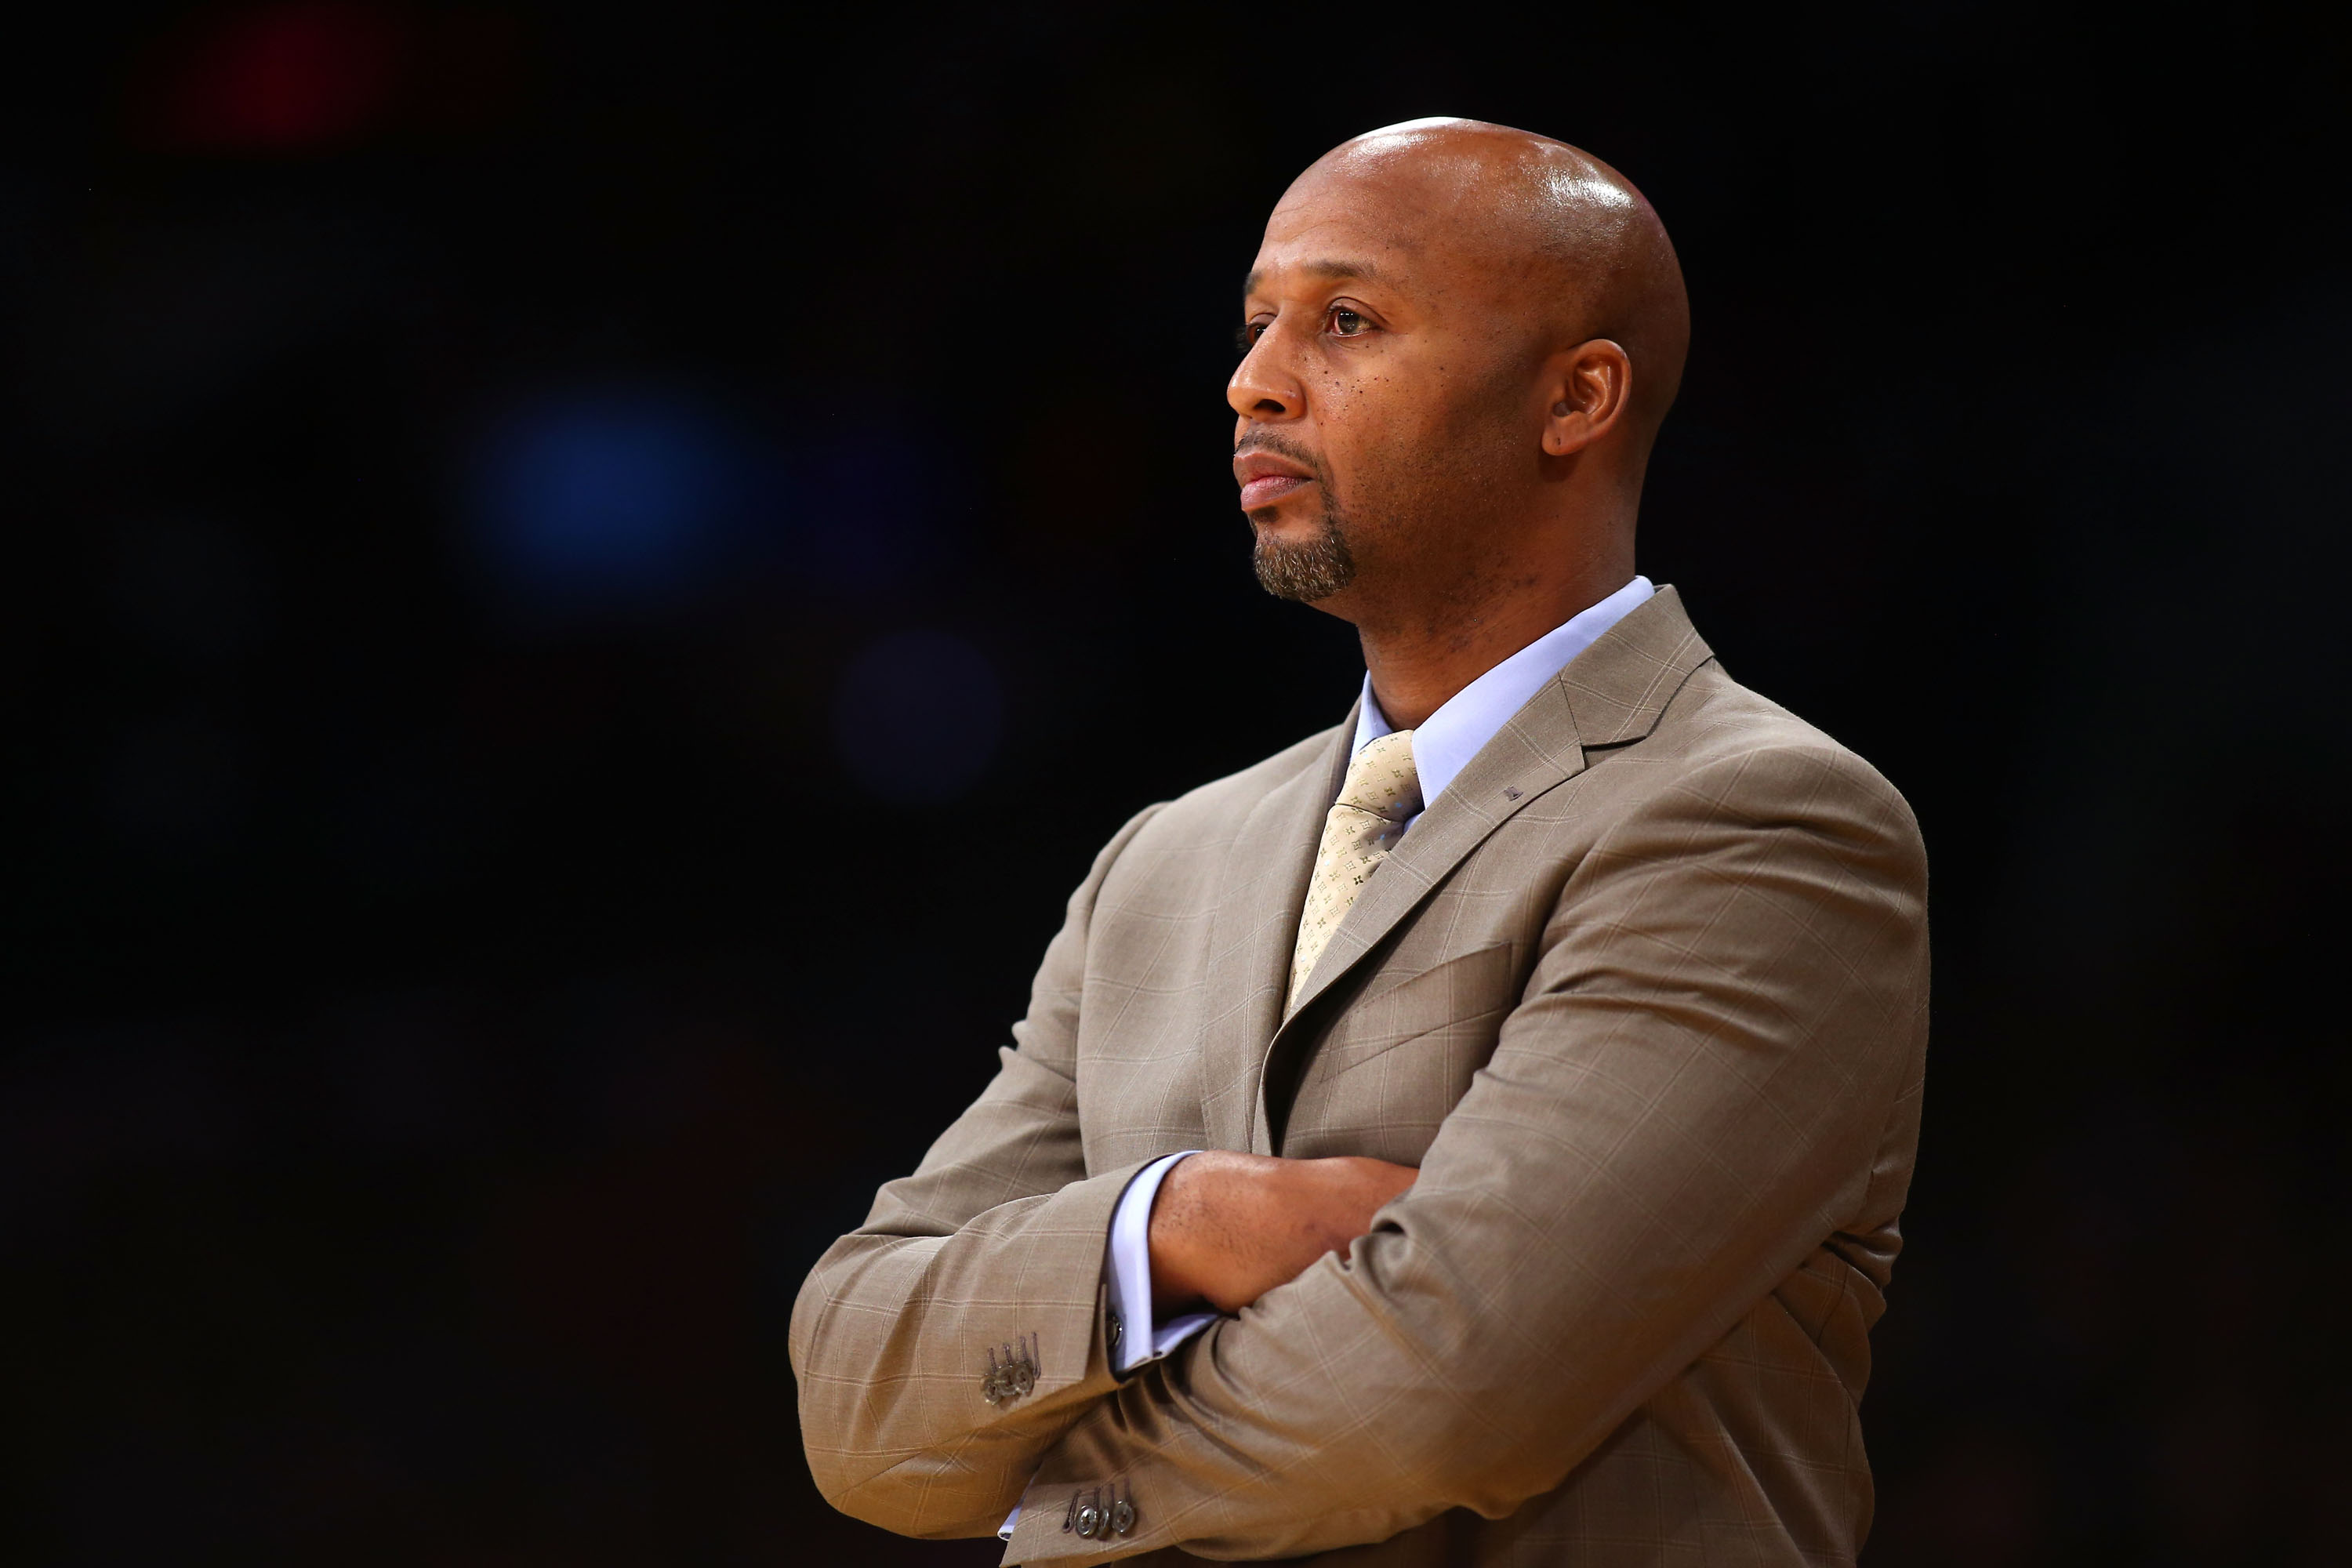 Brian Shaw was riddled with guilt after his parents and sister were killed in a car accident.